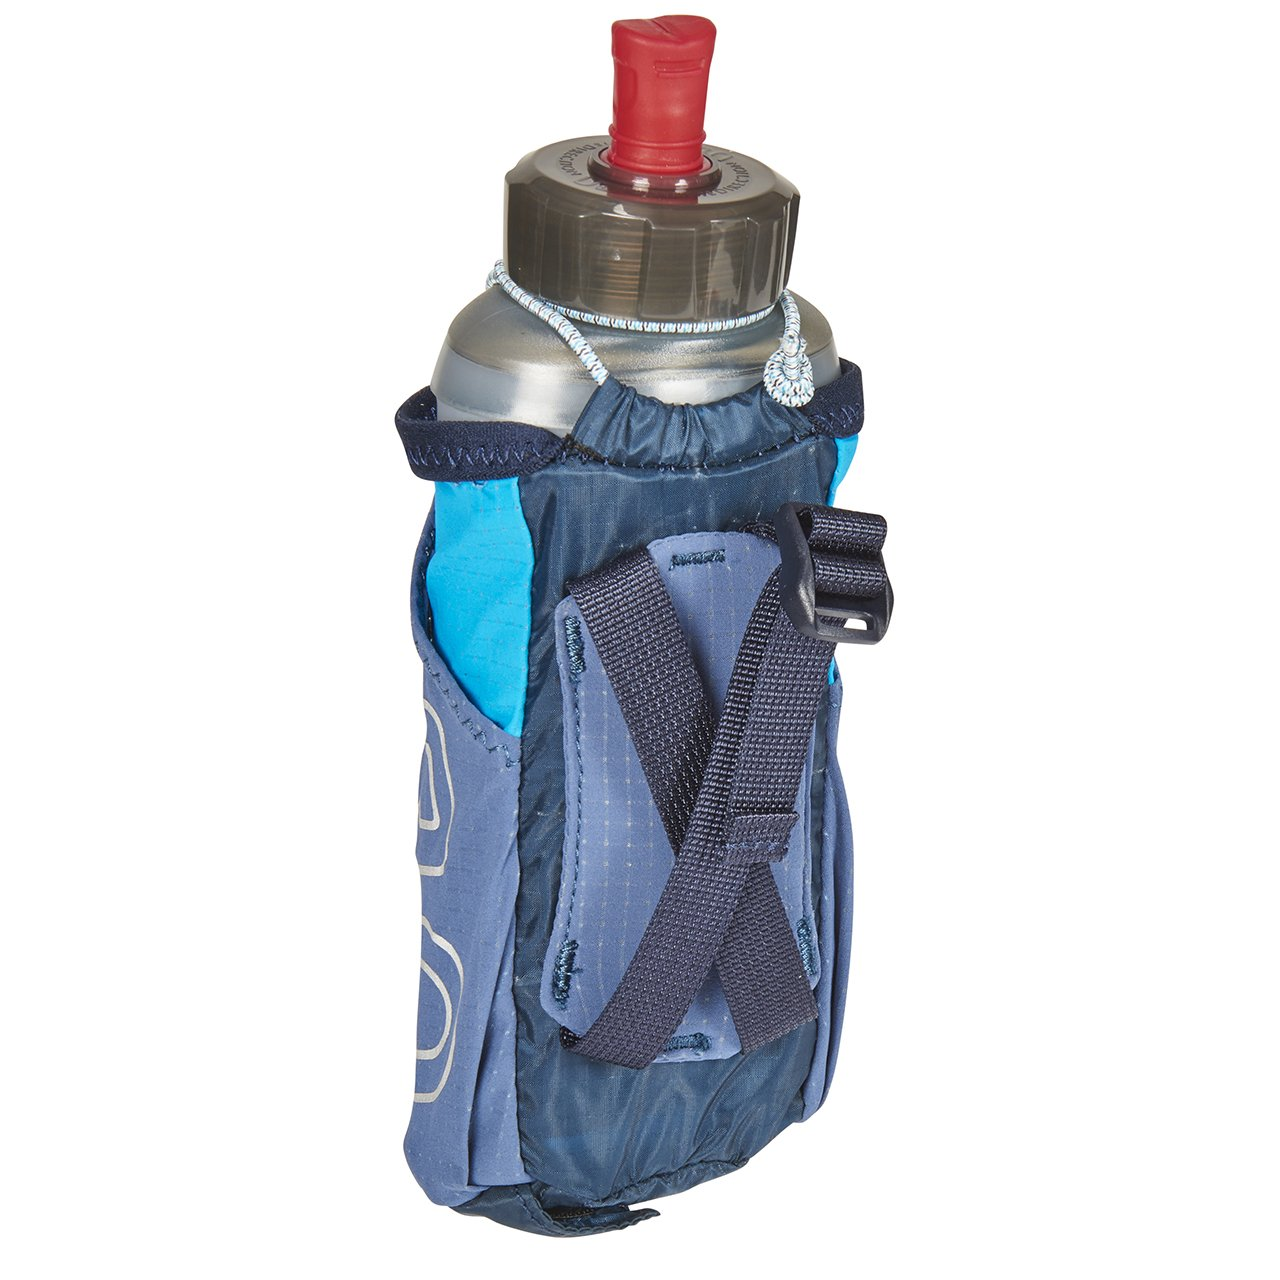 Ultimate Direction EDC (Every Day Clutch) Water Flask Holder, Signature Blue, OneSize by Ultimate Direction (Image #2)